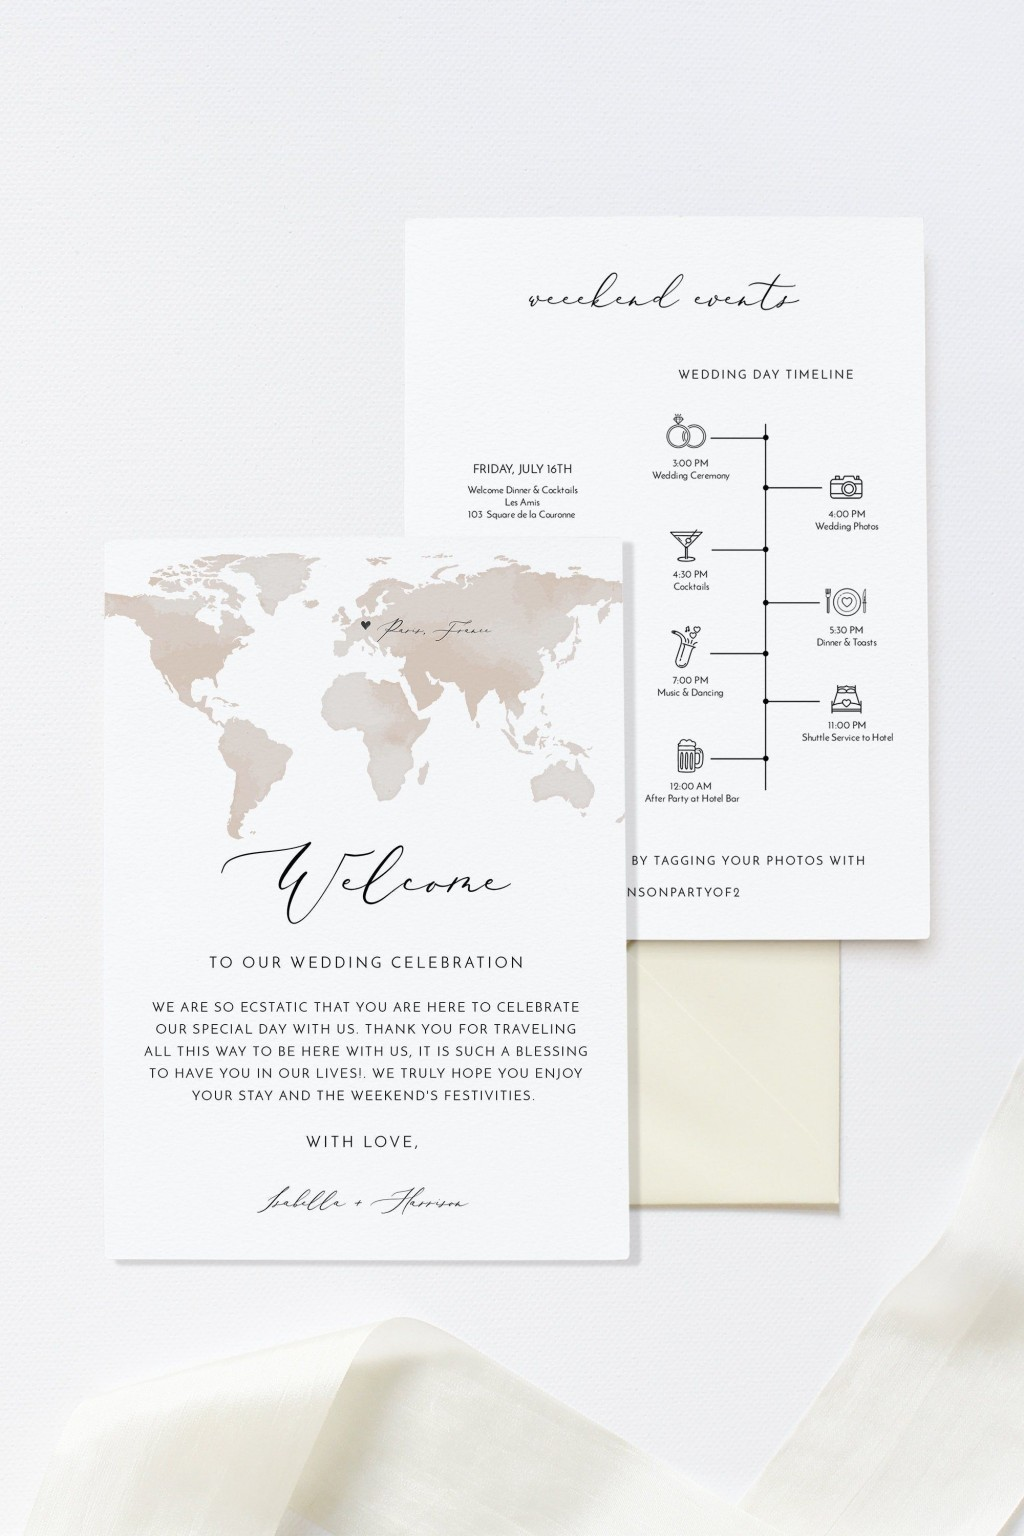 002 Beautiful Destination Wedding Welcome Letter And Itinerary Template Image Large